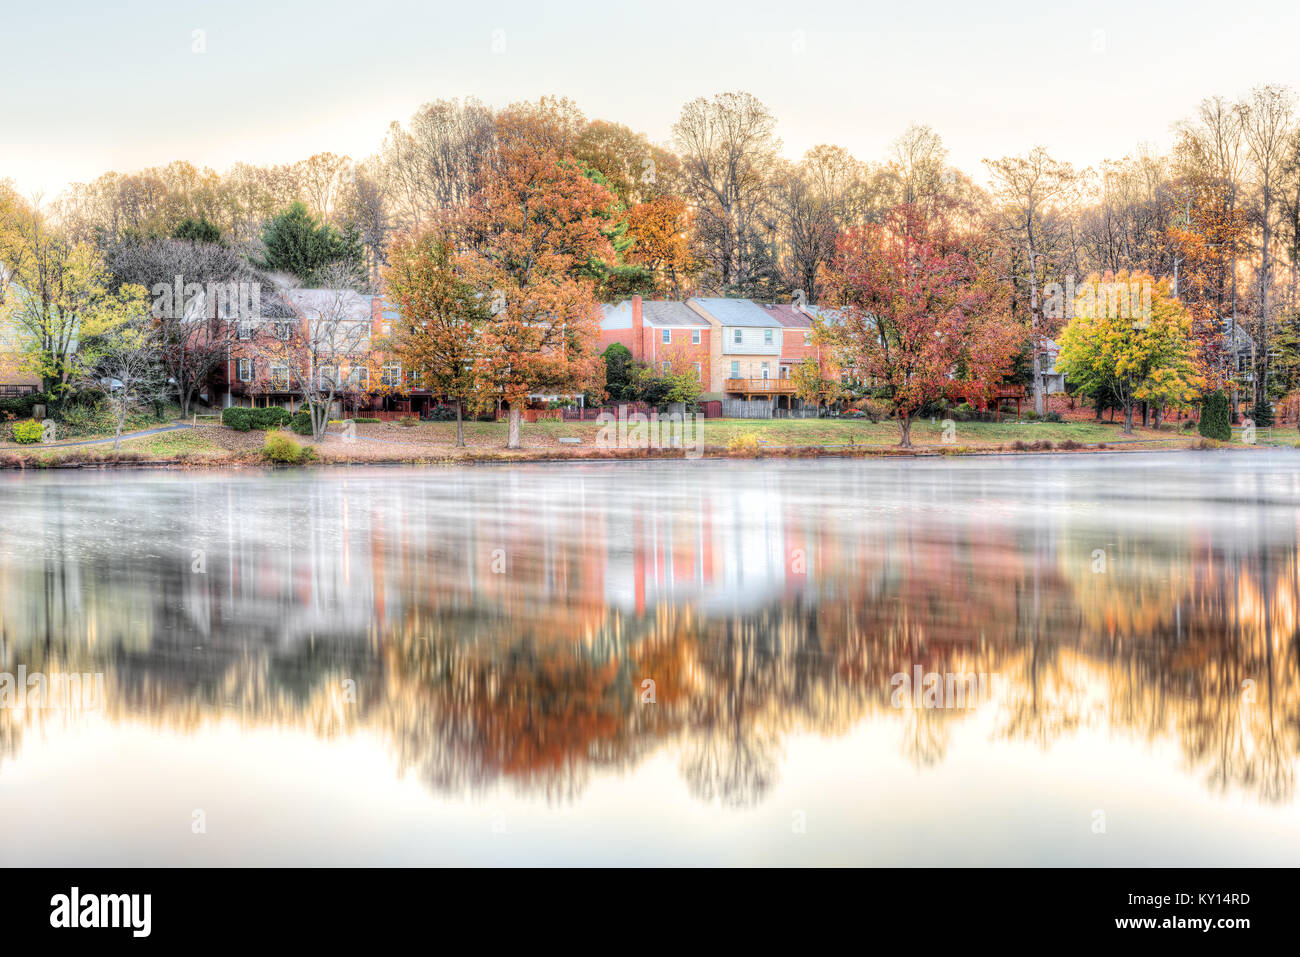 Sunrise on Braddock lake in Burke, Virginia, USA, Fairfax county with reflection of townhouses, fog, mist on water - Stock Image